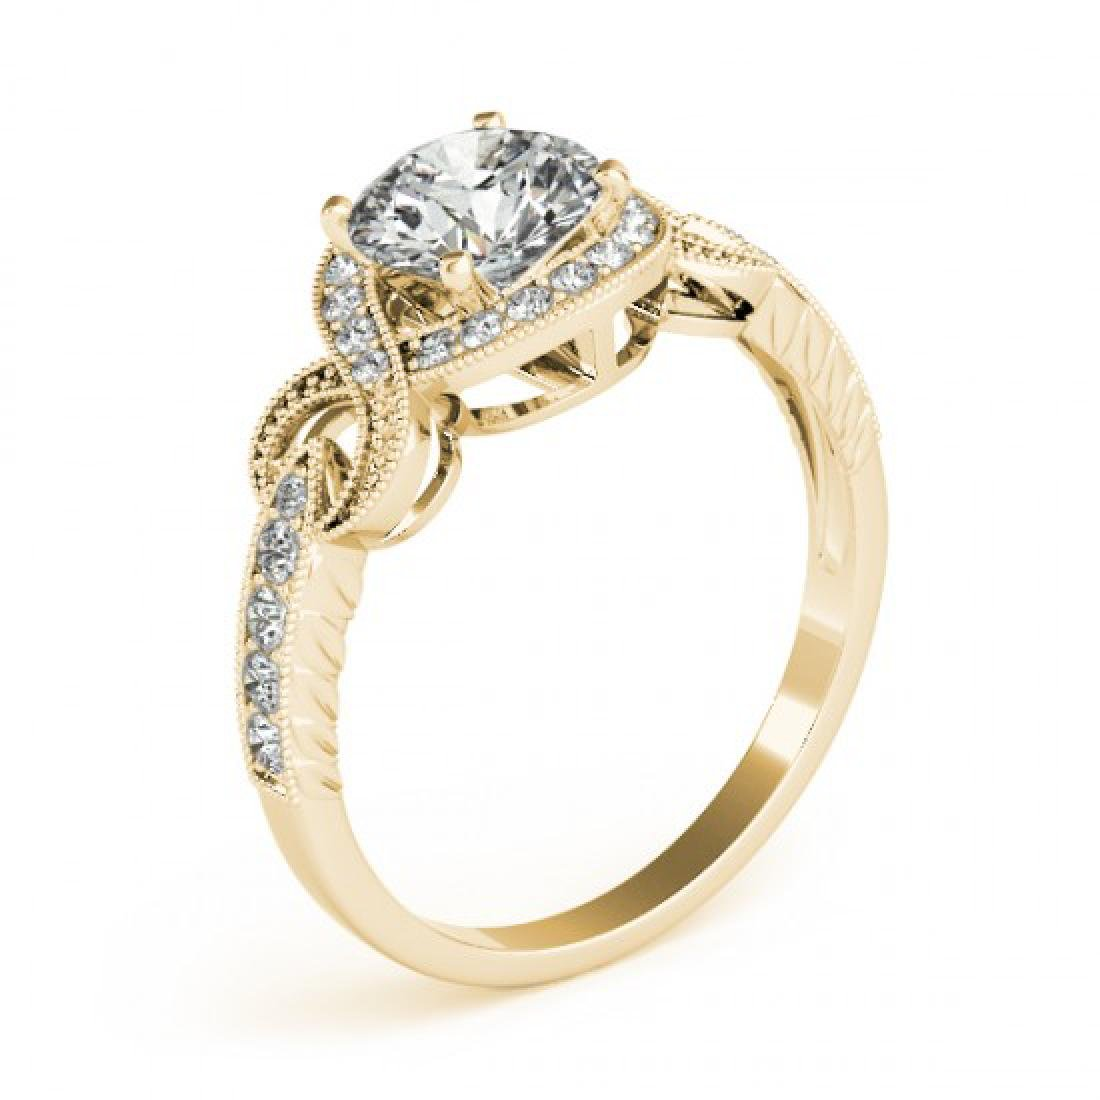 0.8 CTW Certified VS/SI Diamond Solitaire Halo Ring 14K - 3